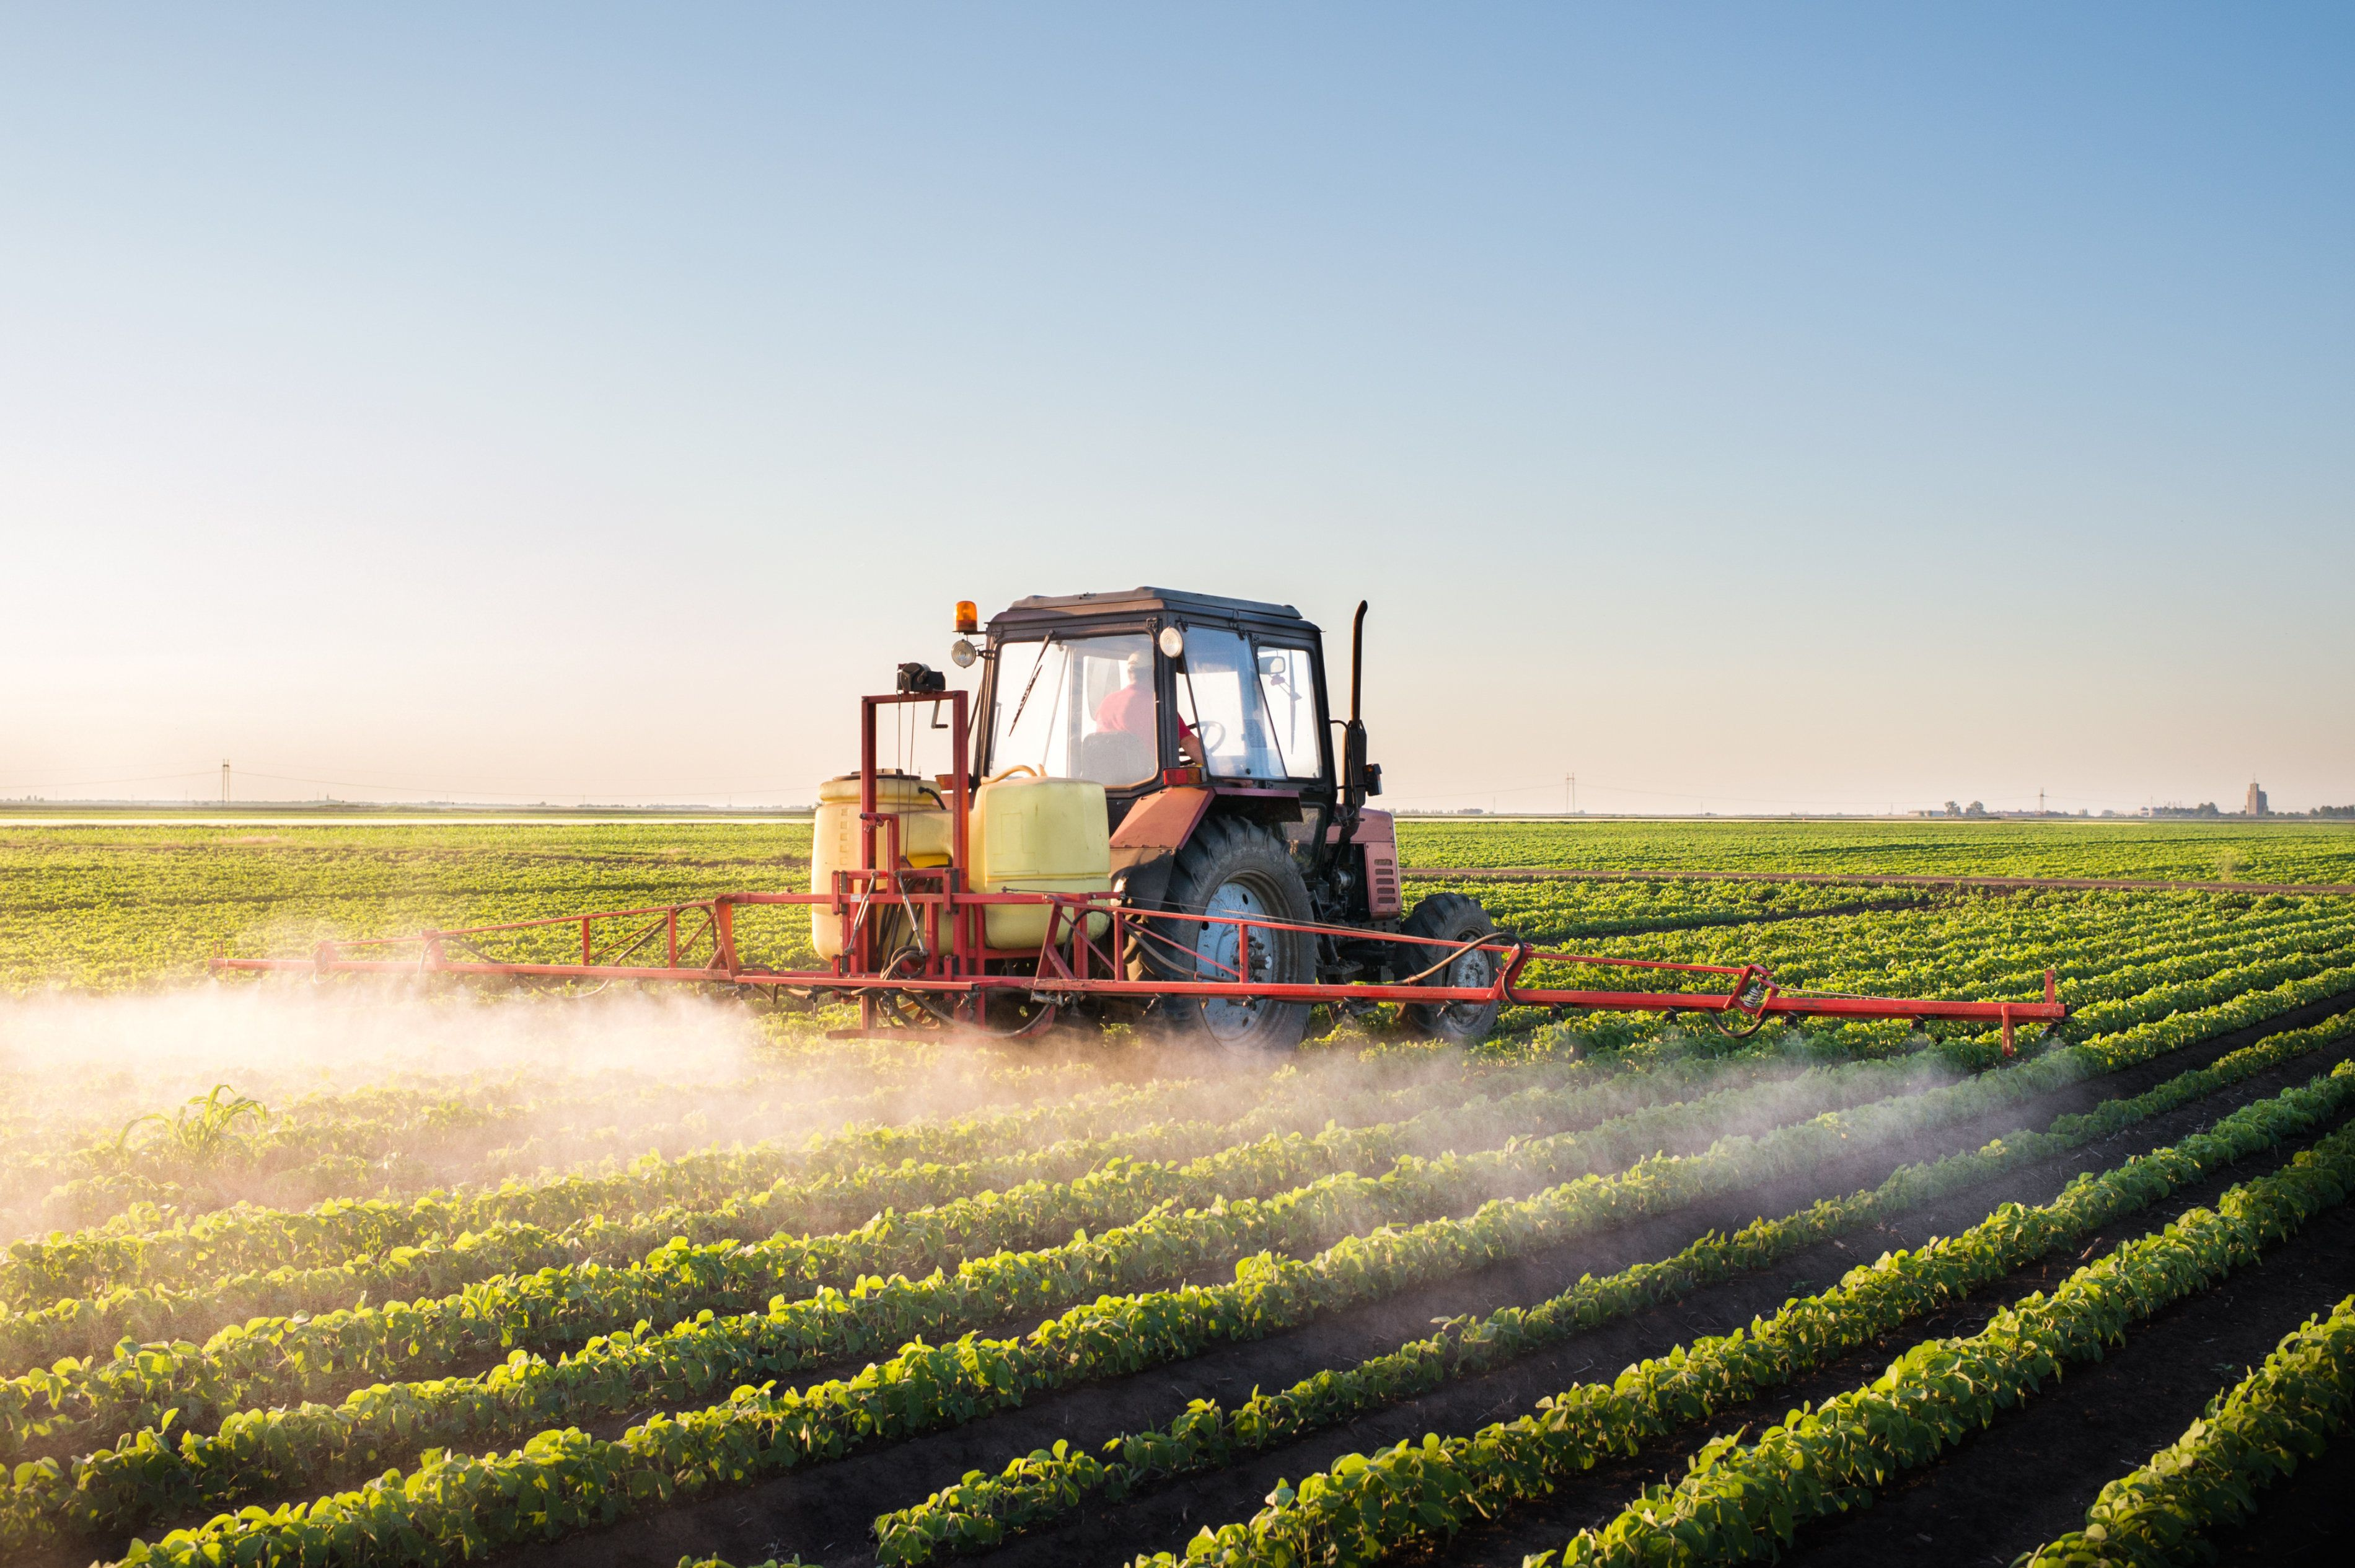 A tractor applies pesticides to a soybean